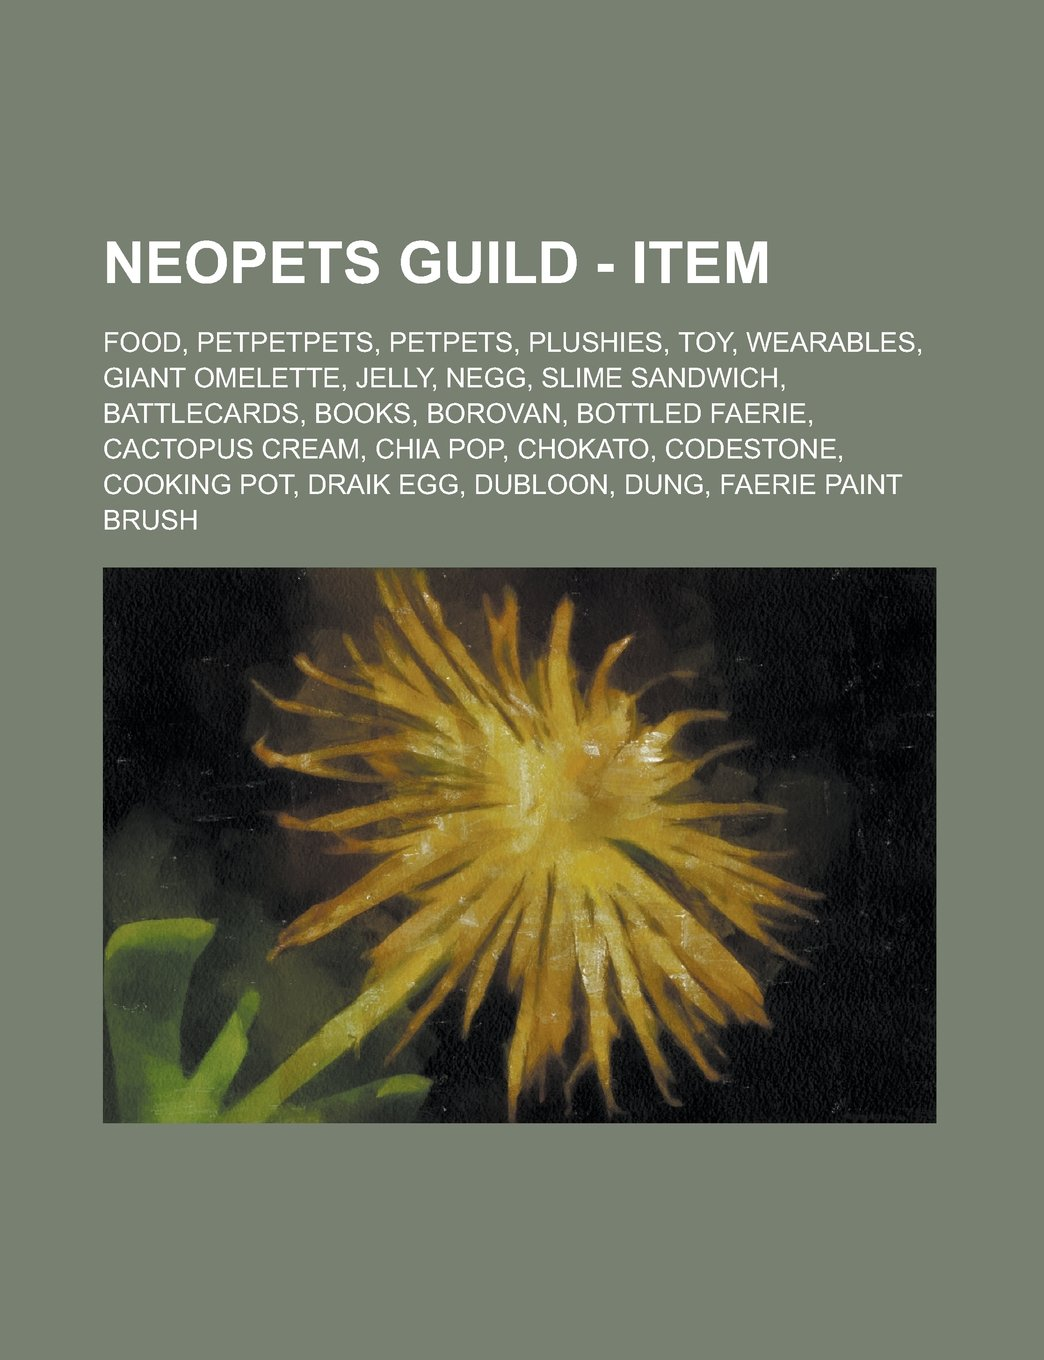 Neopets Guild - Item: Food, Petpetpets, - Livros na Amazon